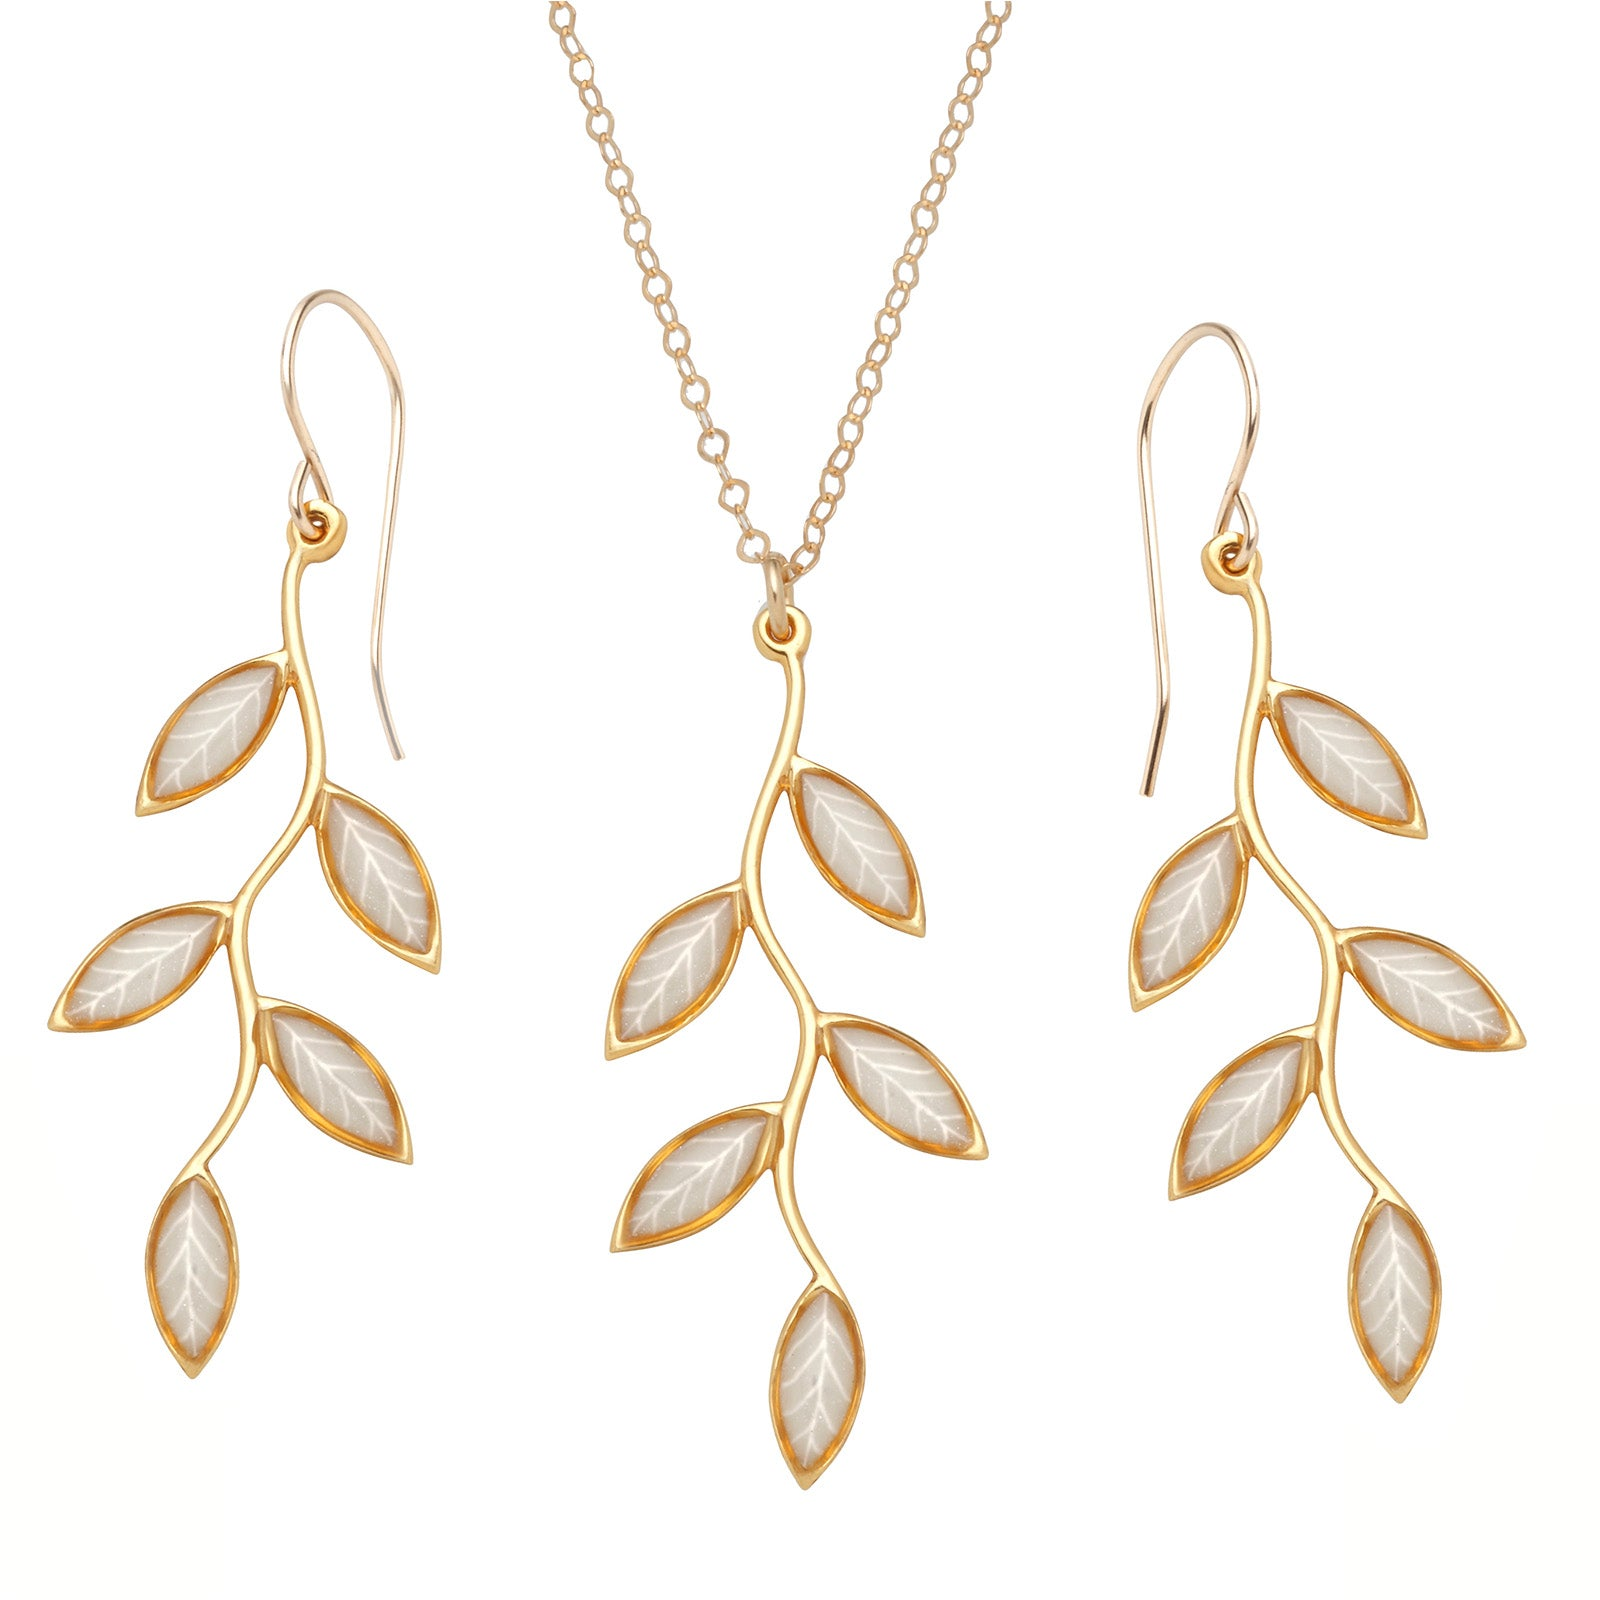 Gold plated 925 silver olive leaf jewelry set handmade necklace and gold plated 925 silver olive leaf jewelry set handmade necklace and earrings nanostyle jewelry aloadofball Choice Image